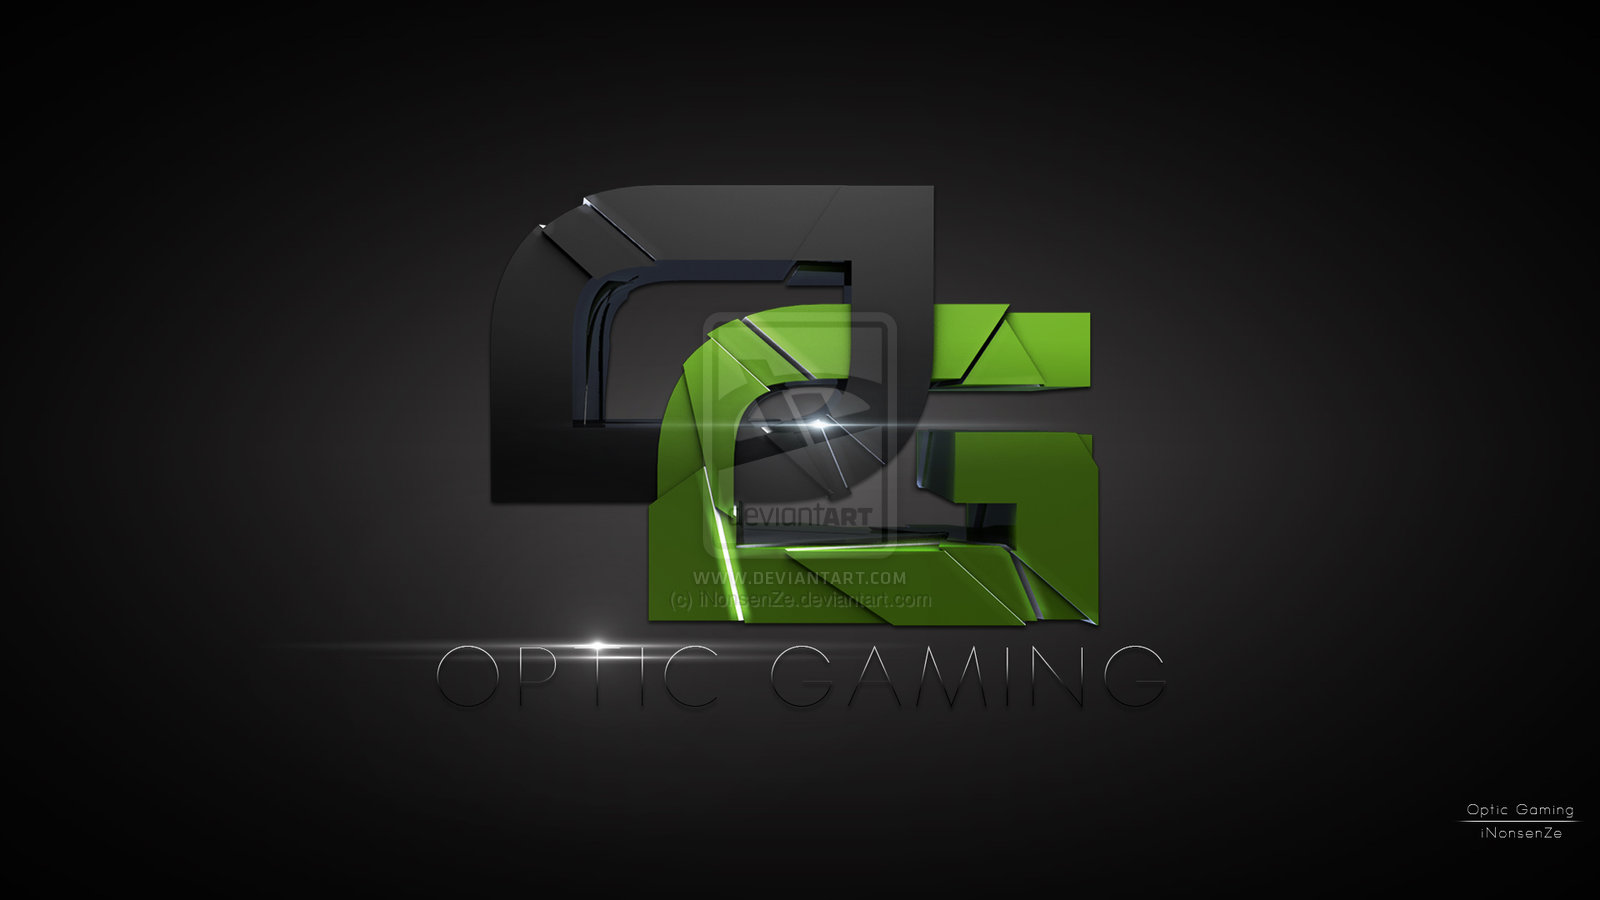 Photo Collection Wallpapers Optic Gaming The